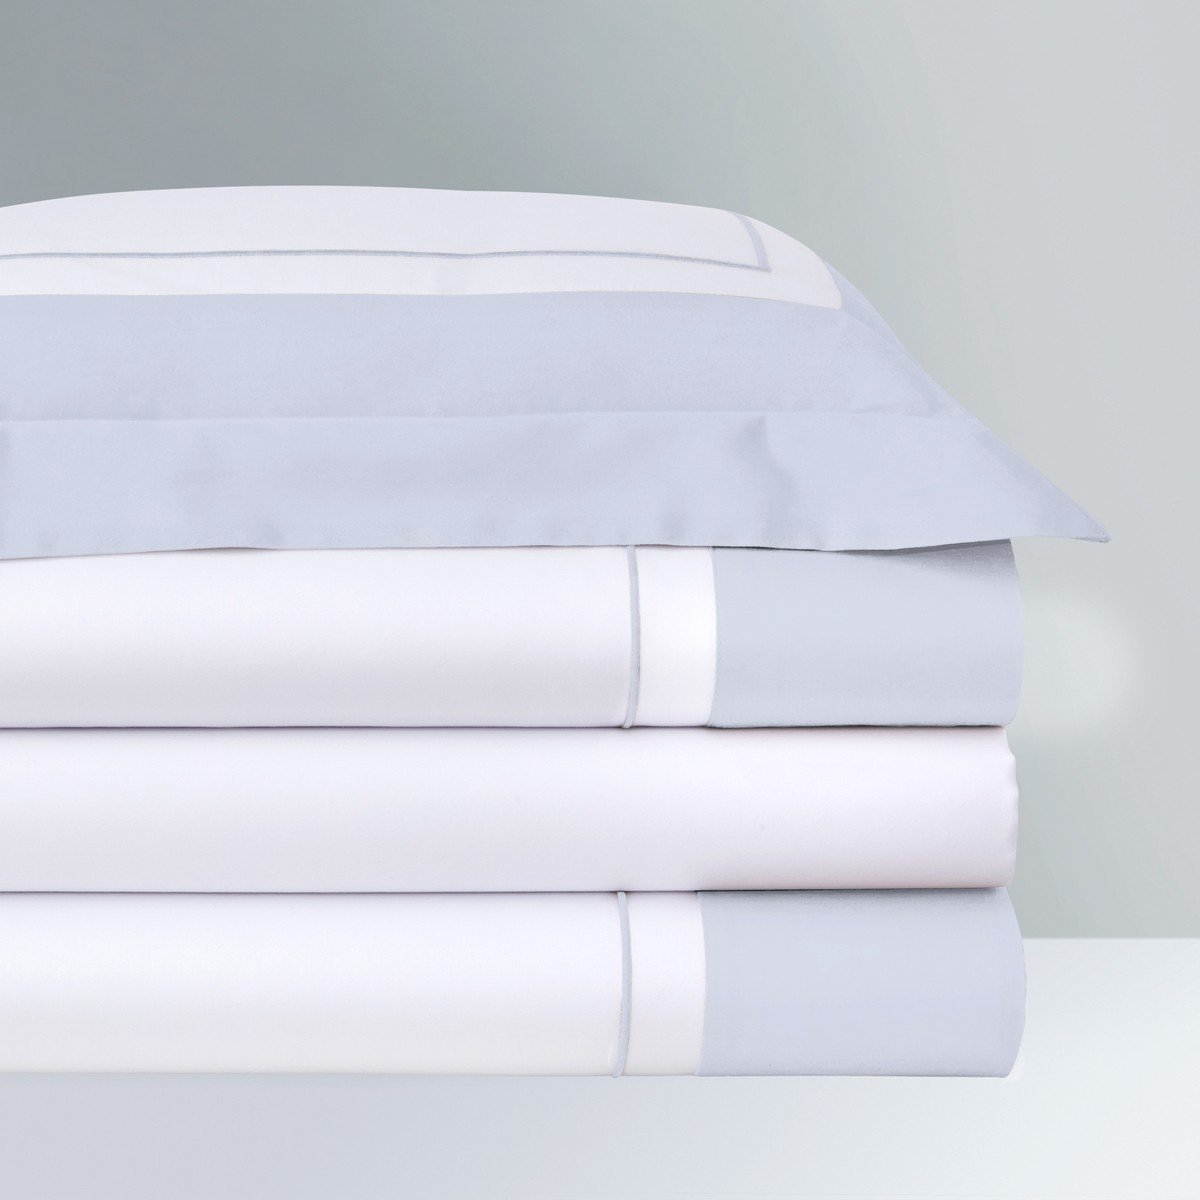 Lutece Opalia Bedding by Yves Delorme | Fig Linens - Duvet cover, sheets, shams